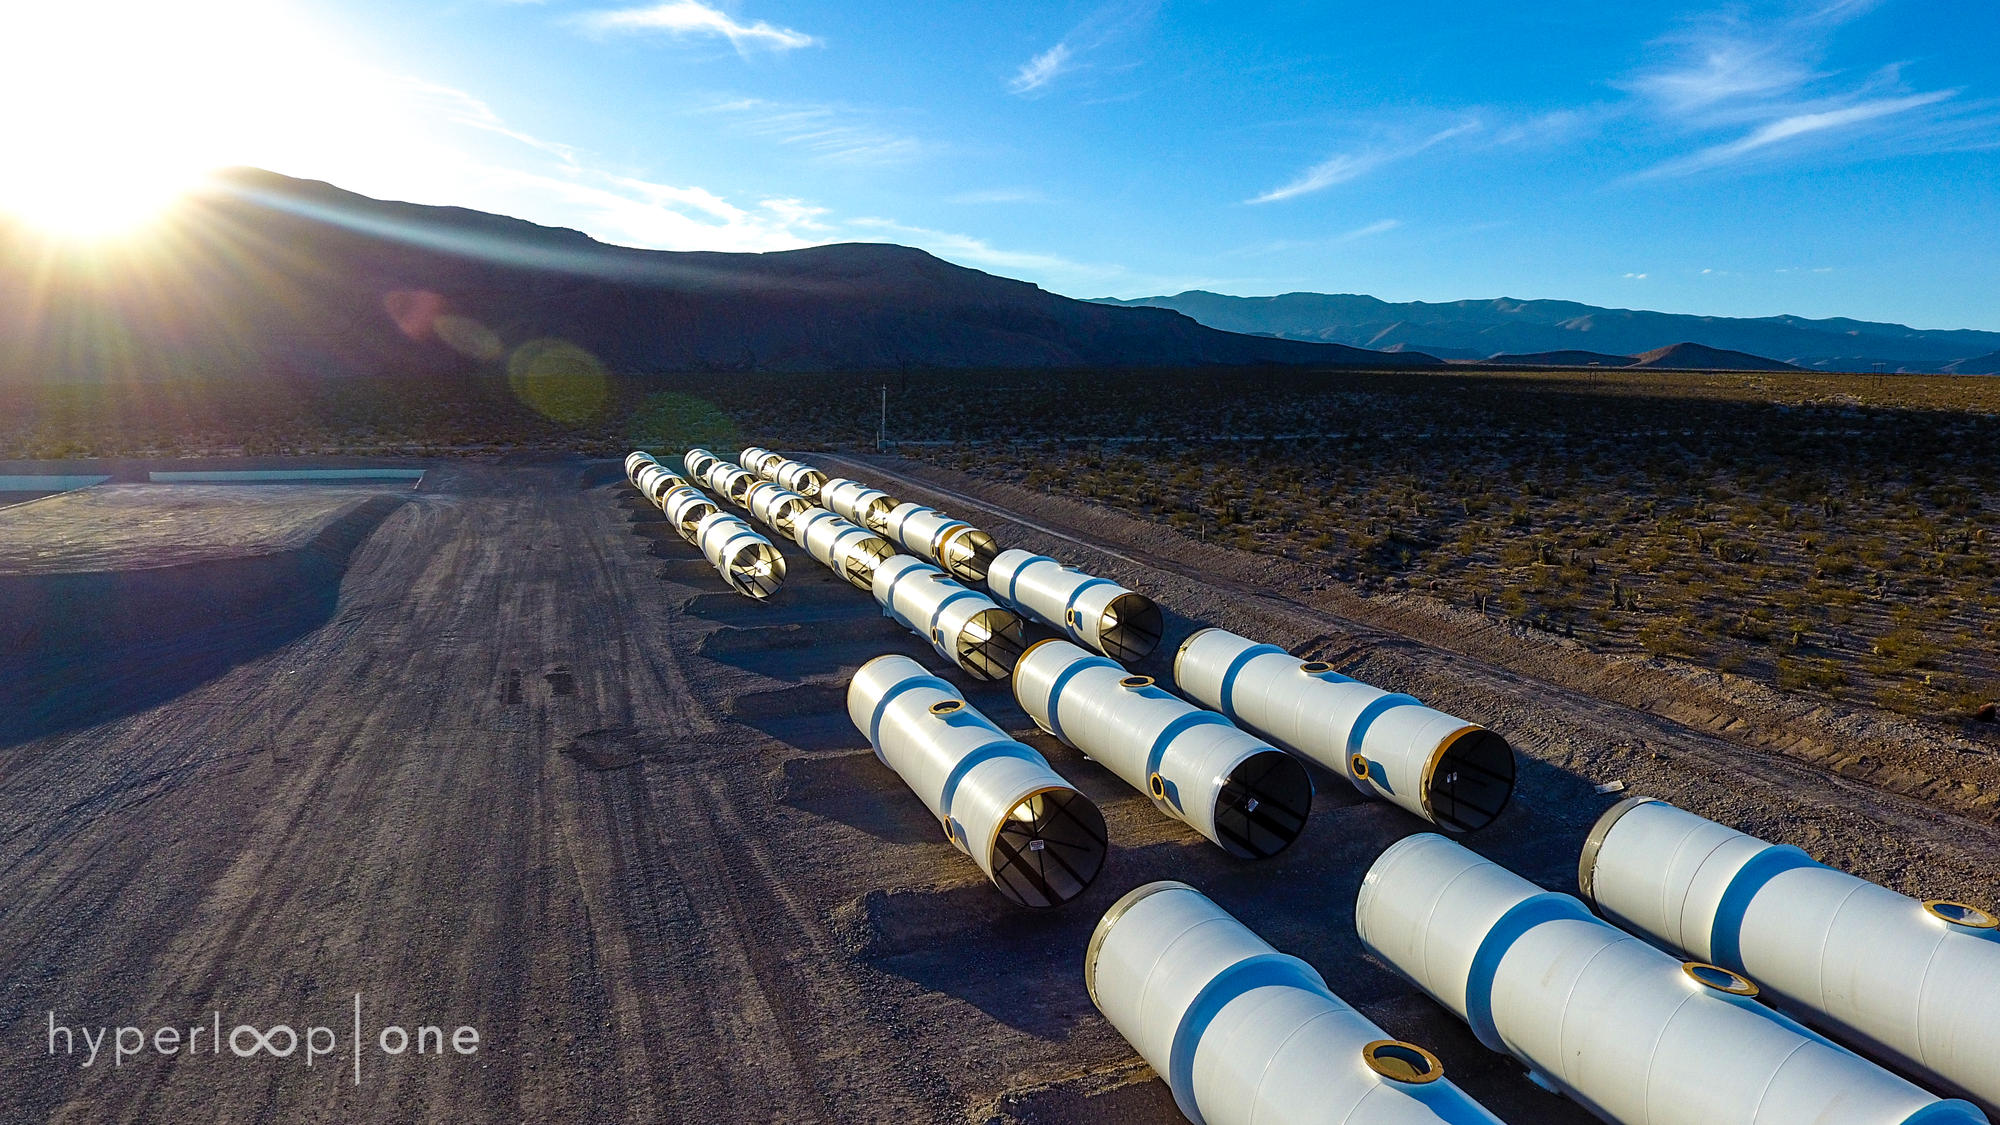 Hyperloop - The Future of High Speed Travel